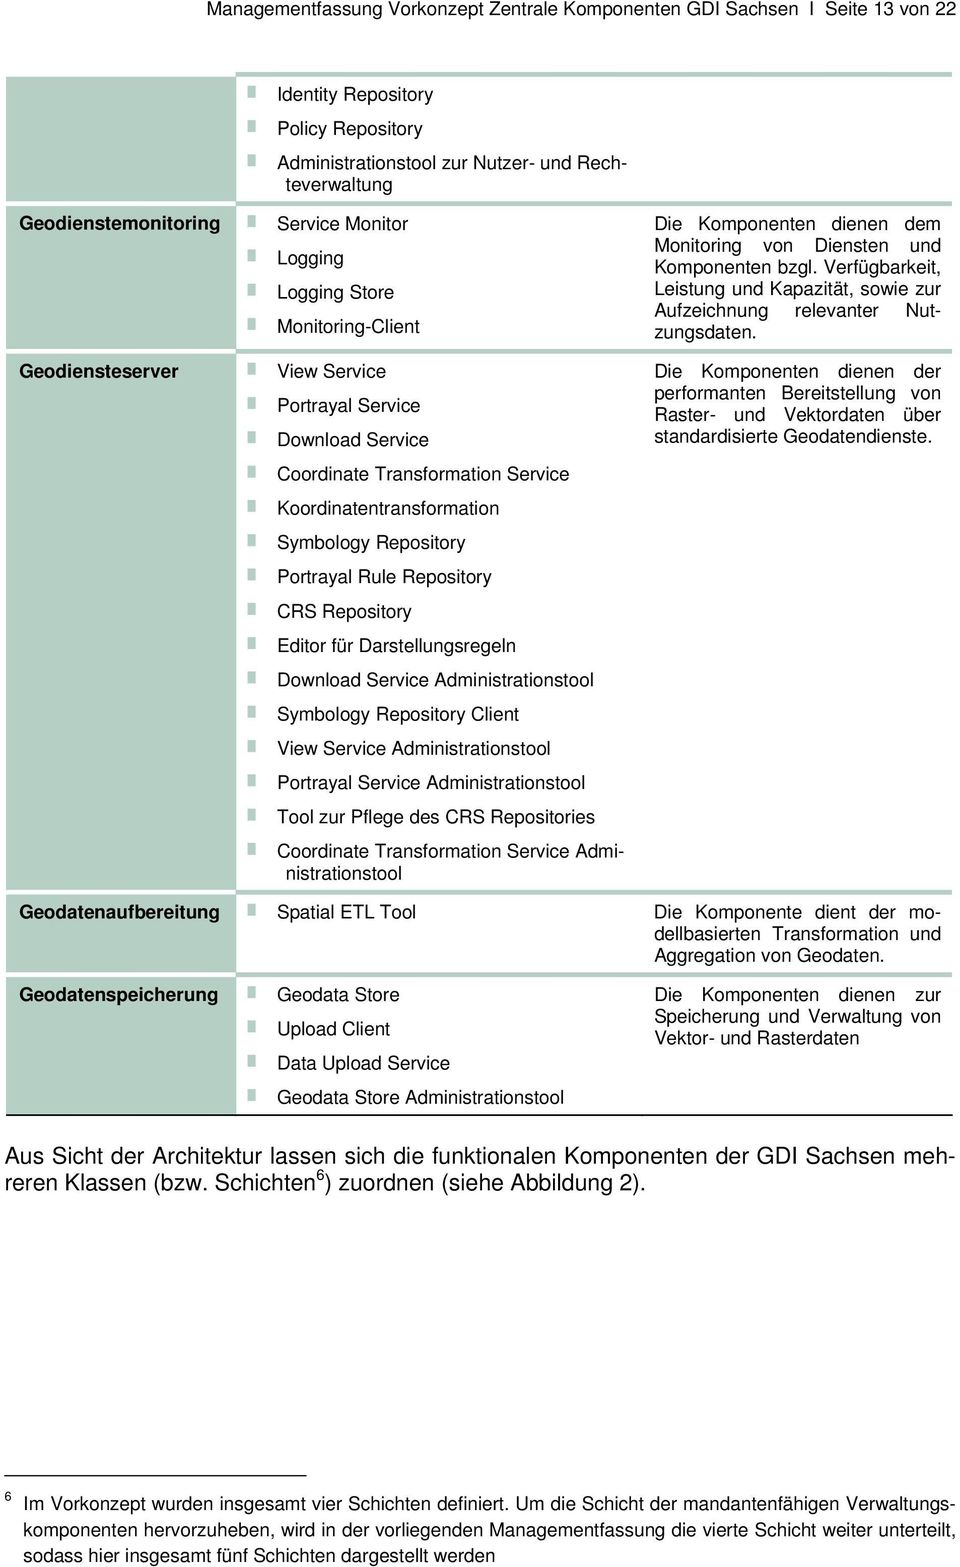 Repository Portrayal Rule Repository CRS Repository Editor für Darstellungsregeln Download Service Administrationstool Symbology Repository Client View Service Administrationstool Portrayal Service